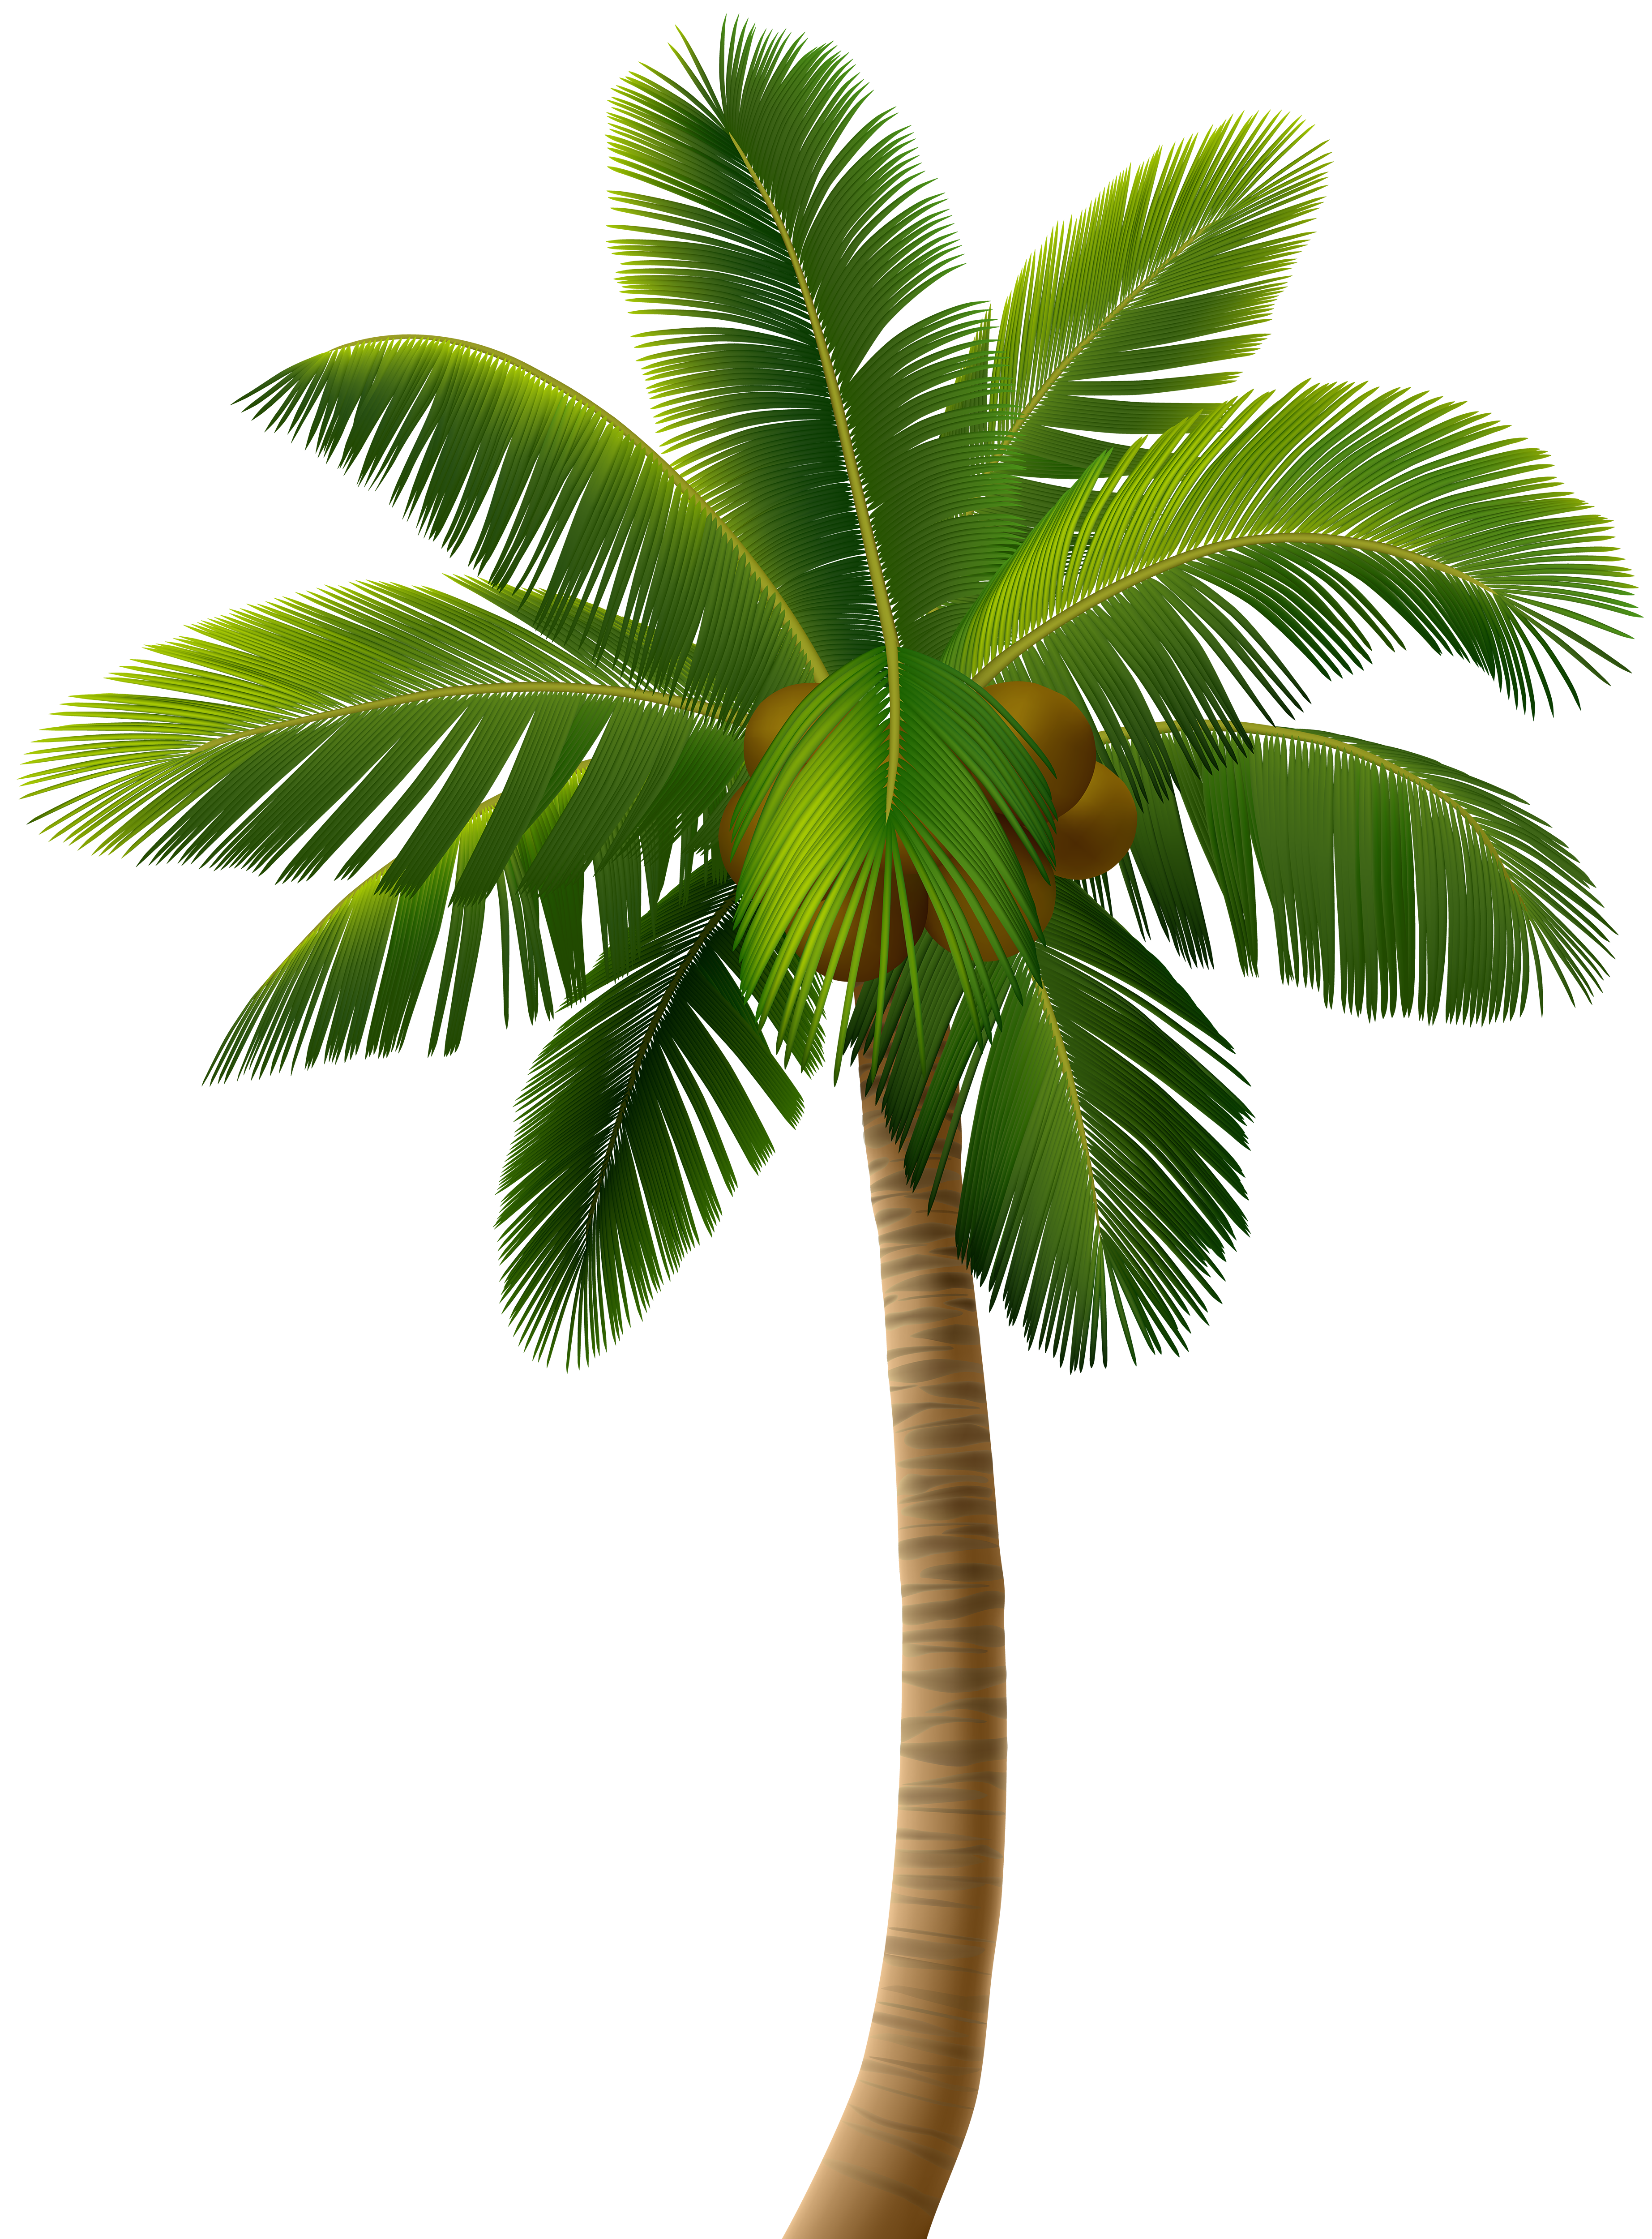 Tree png free download. Palm clip art image